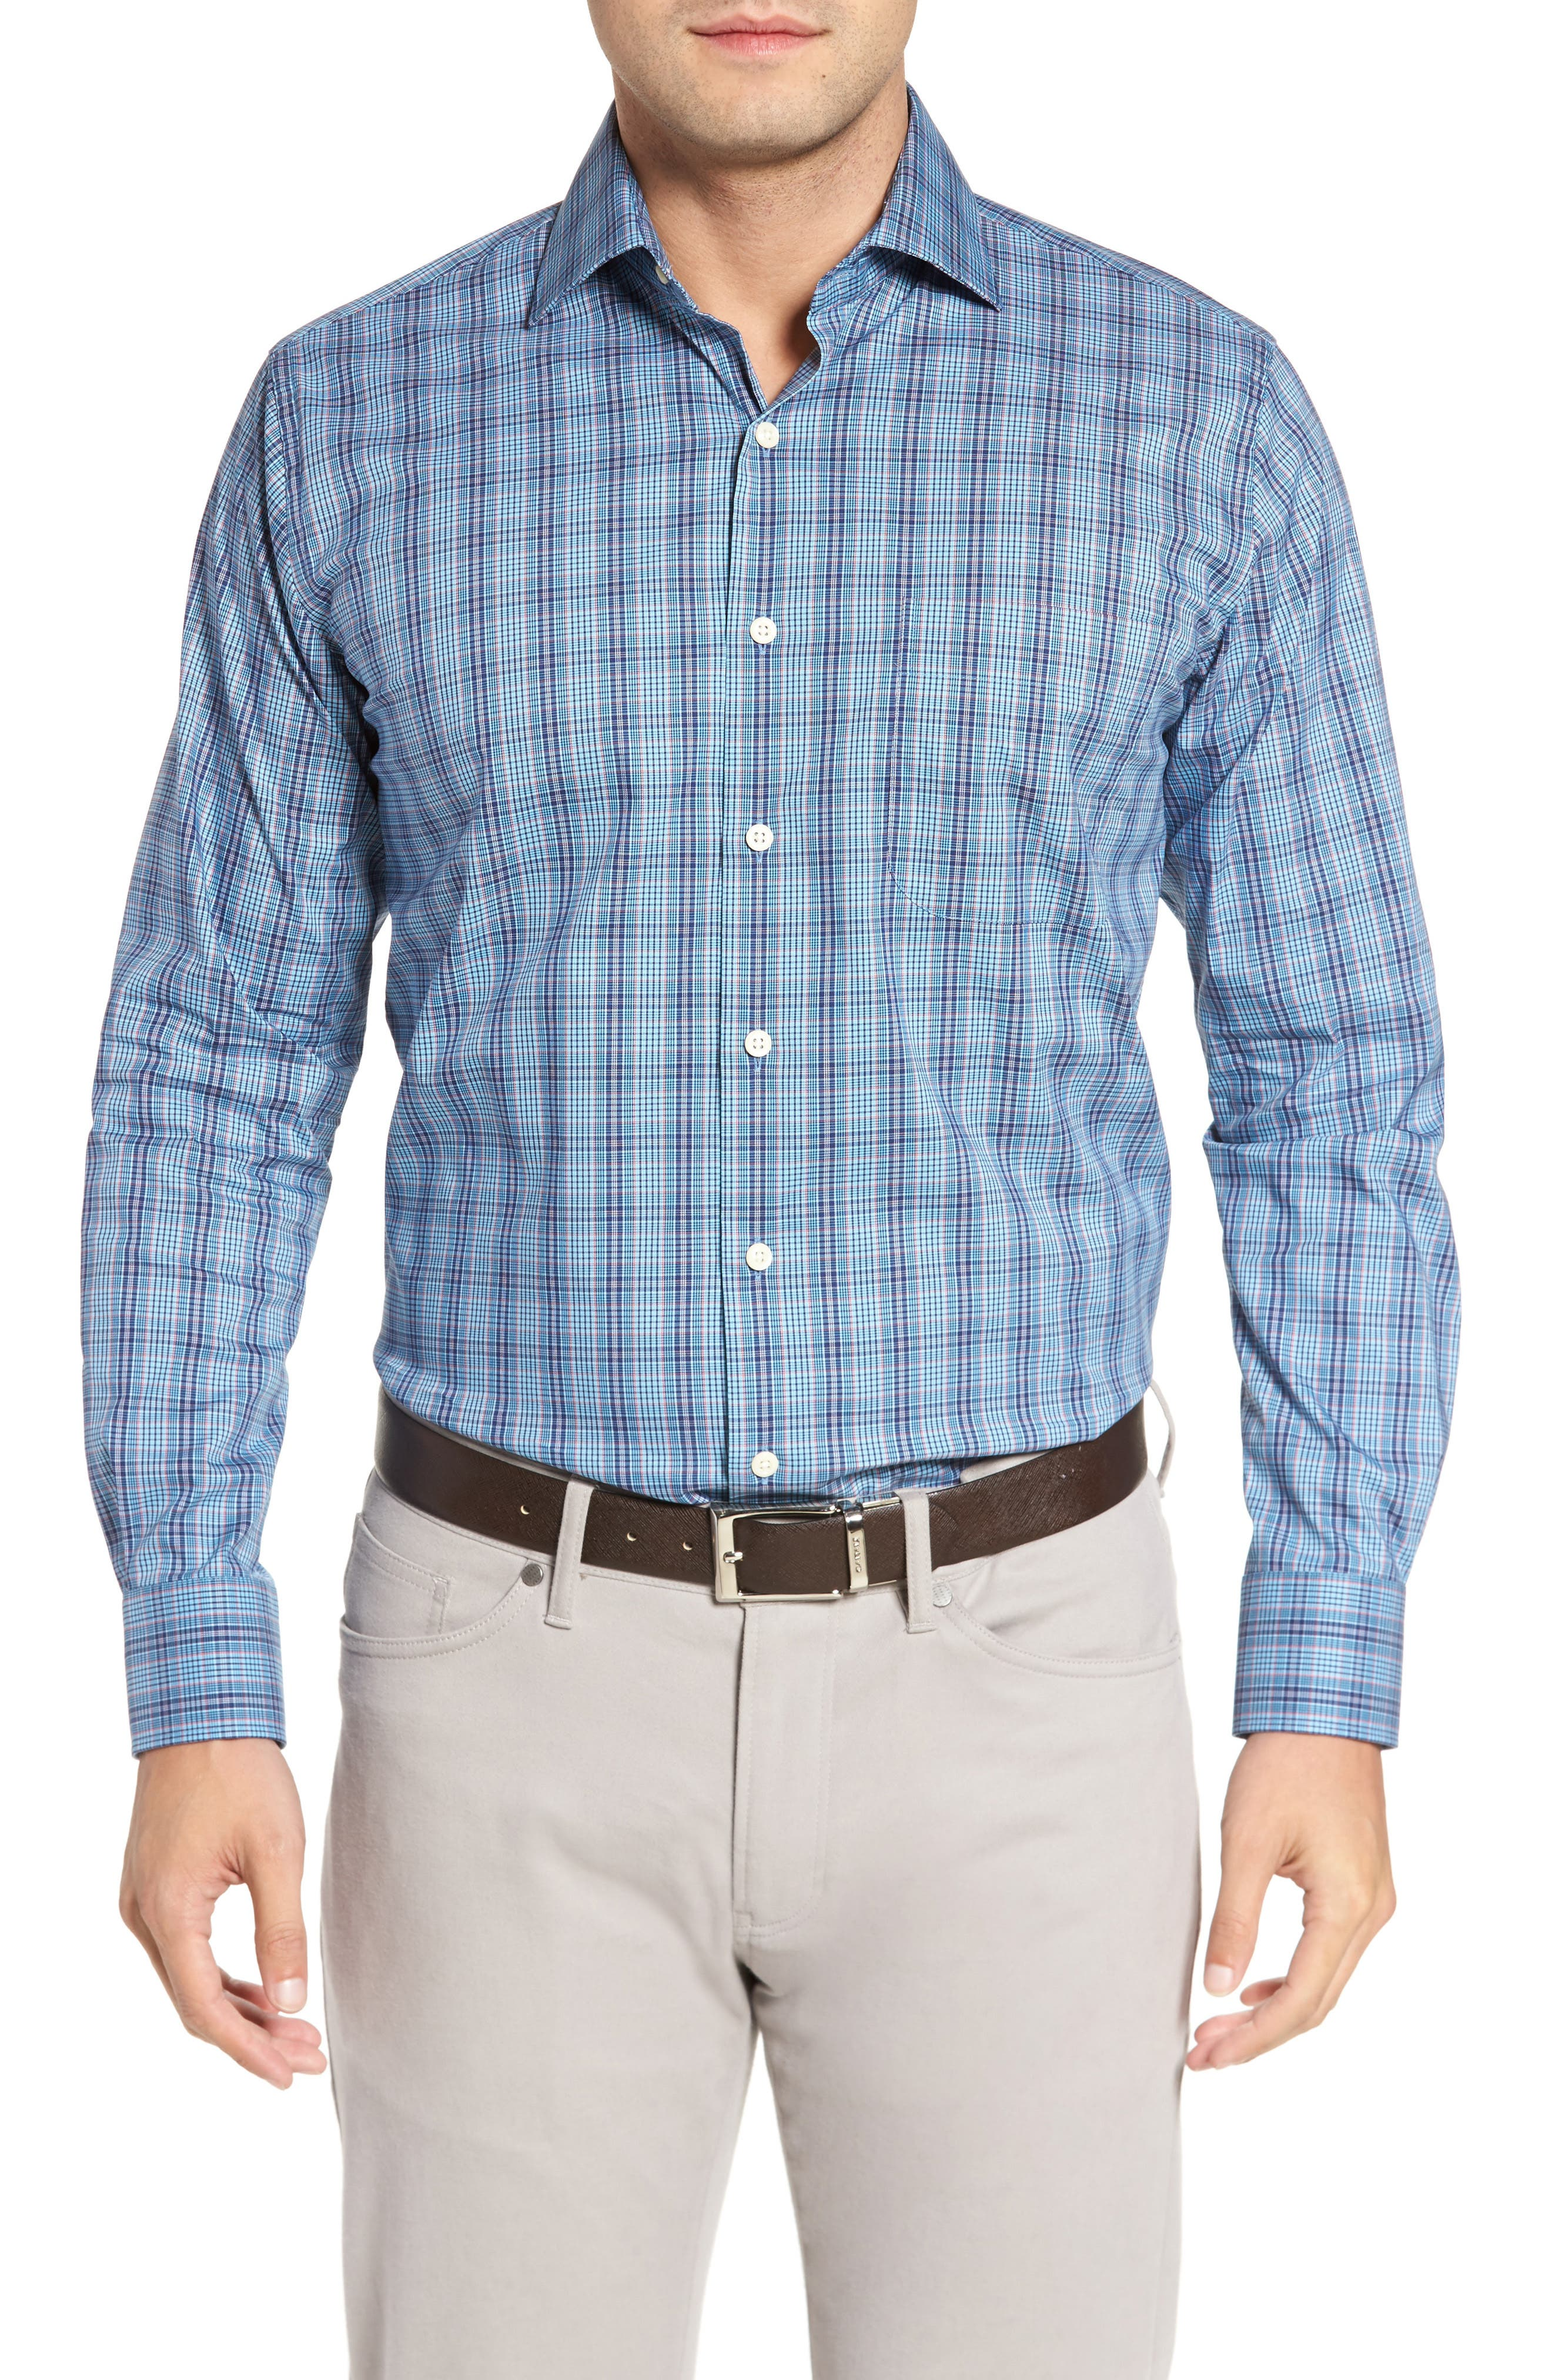 Classic Fit Crown Comfort Homestead Glen Sport Shirt,                             Main thumbnail 1, color,                             951